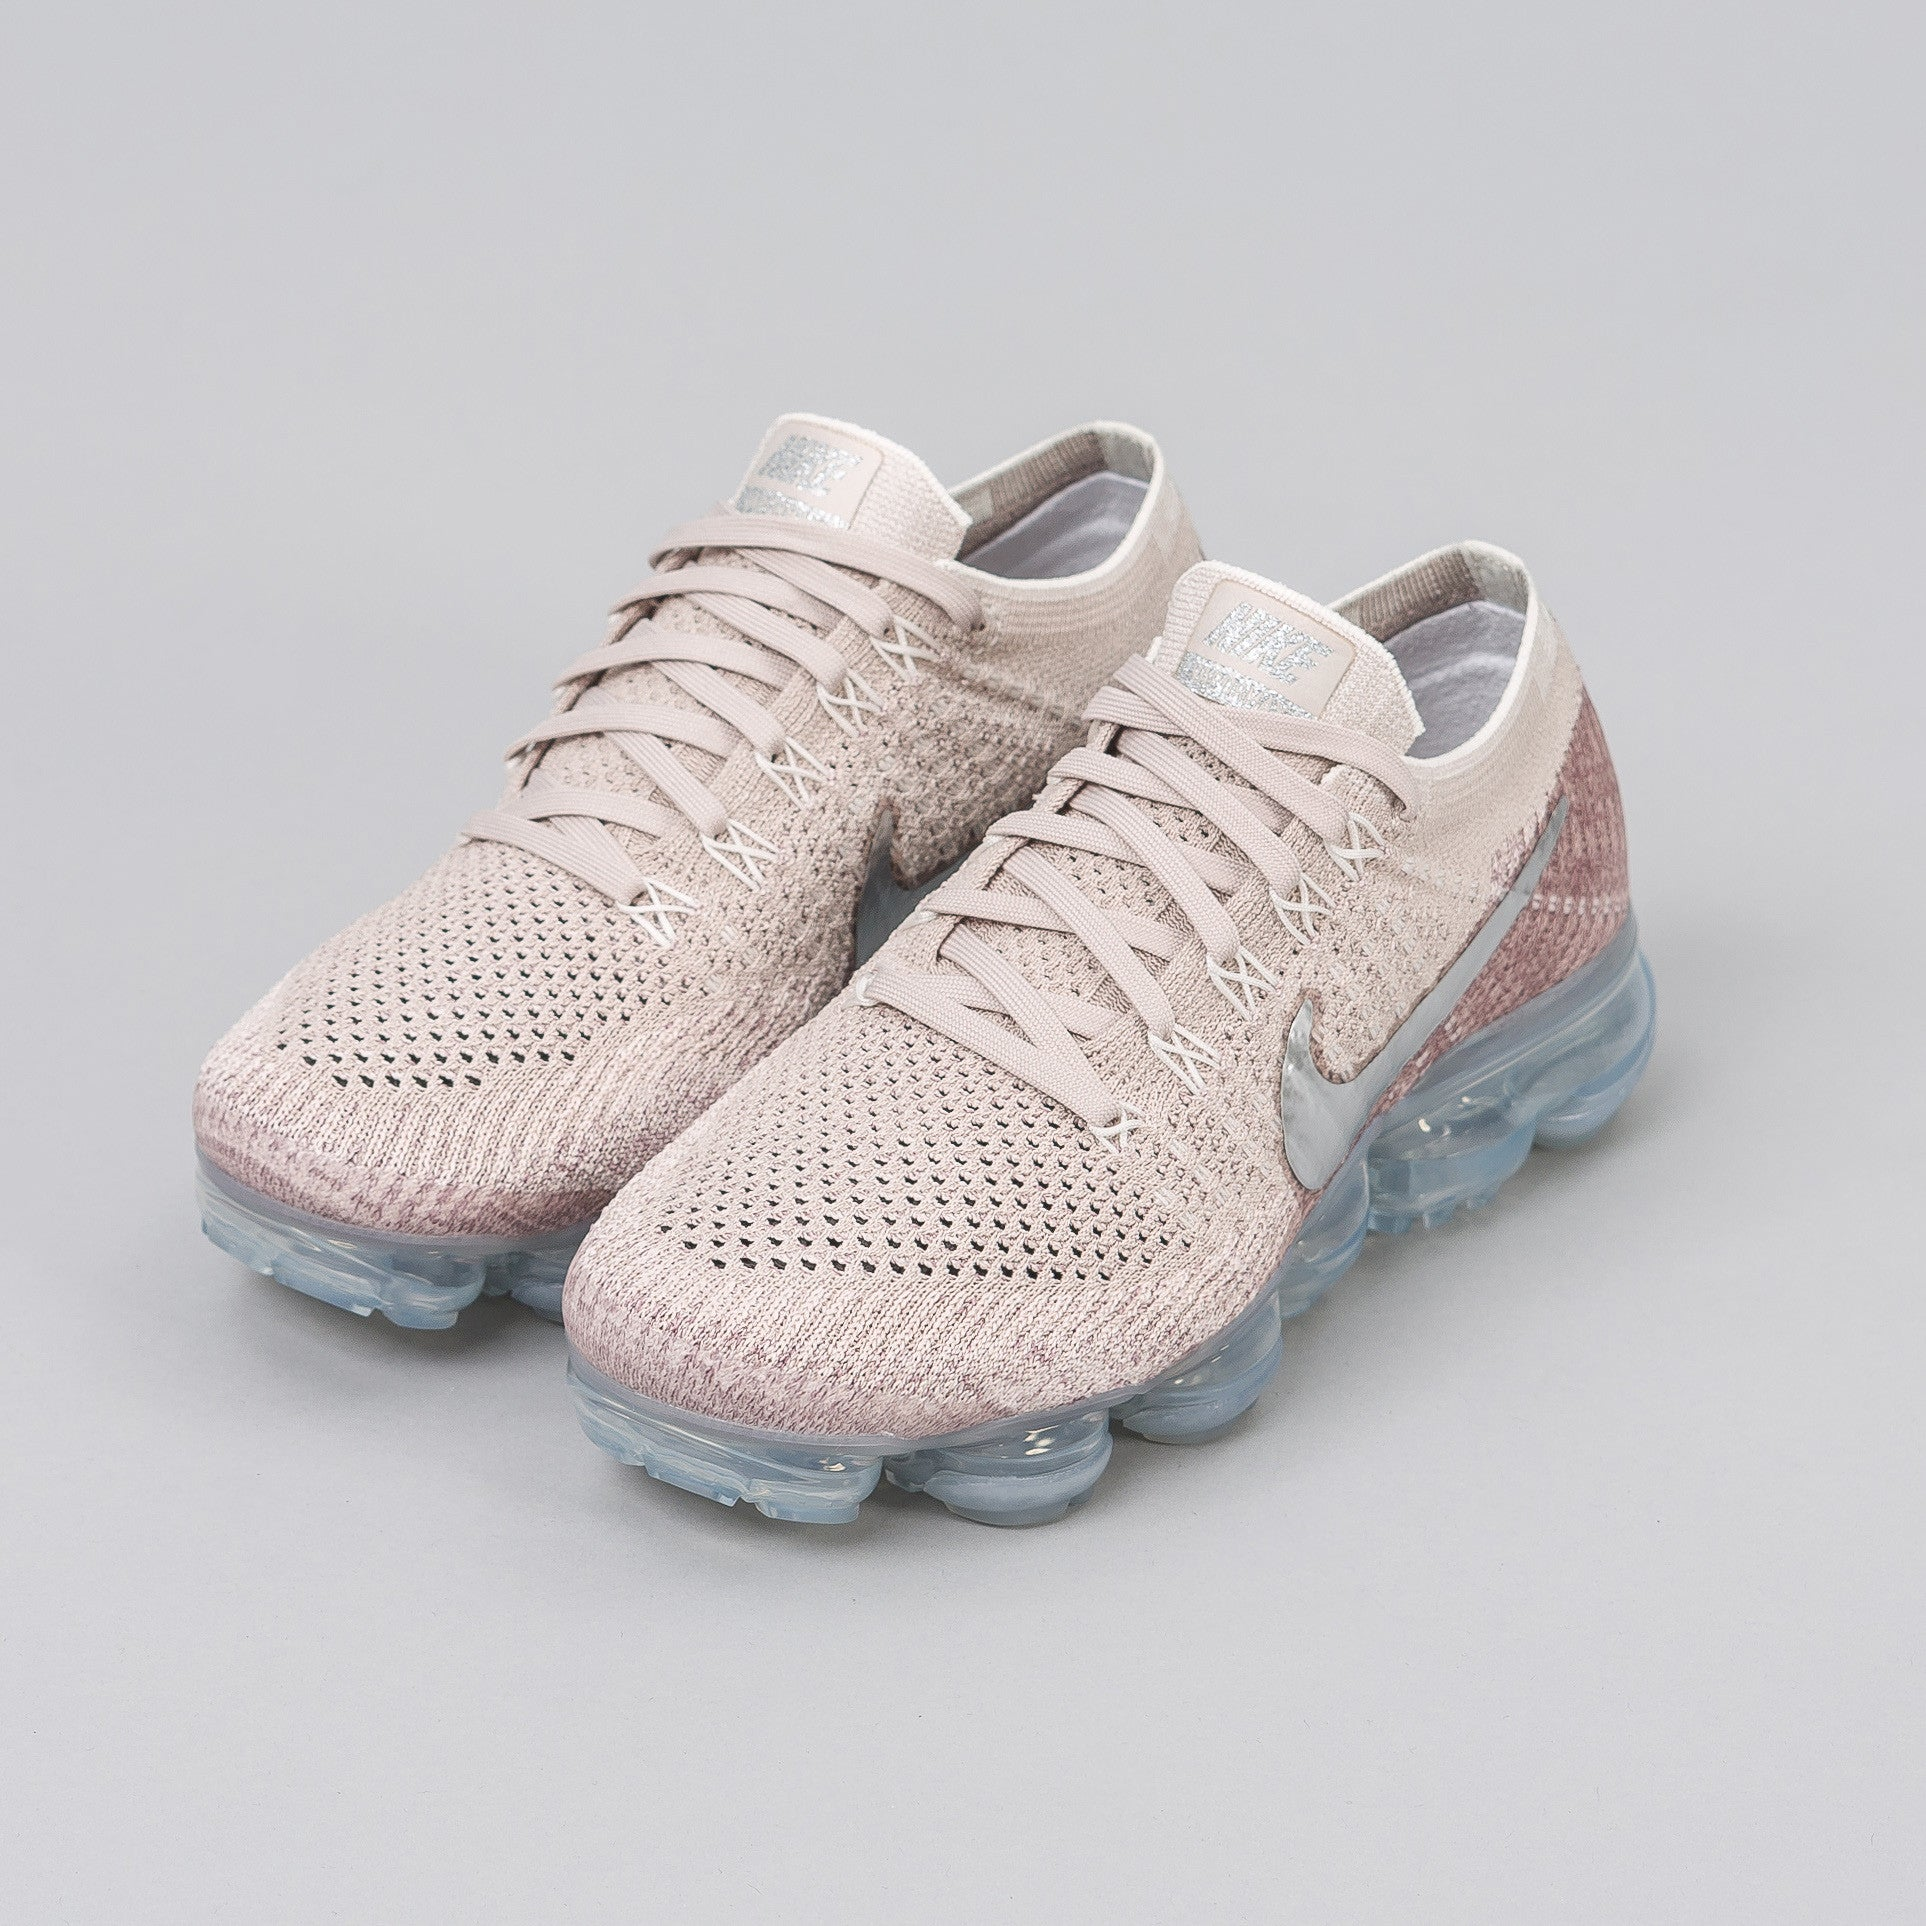 Nike Air VaporMax: Why sneakers are having an air bubble moment